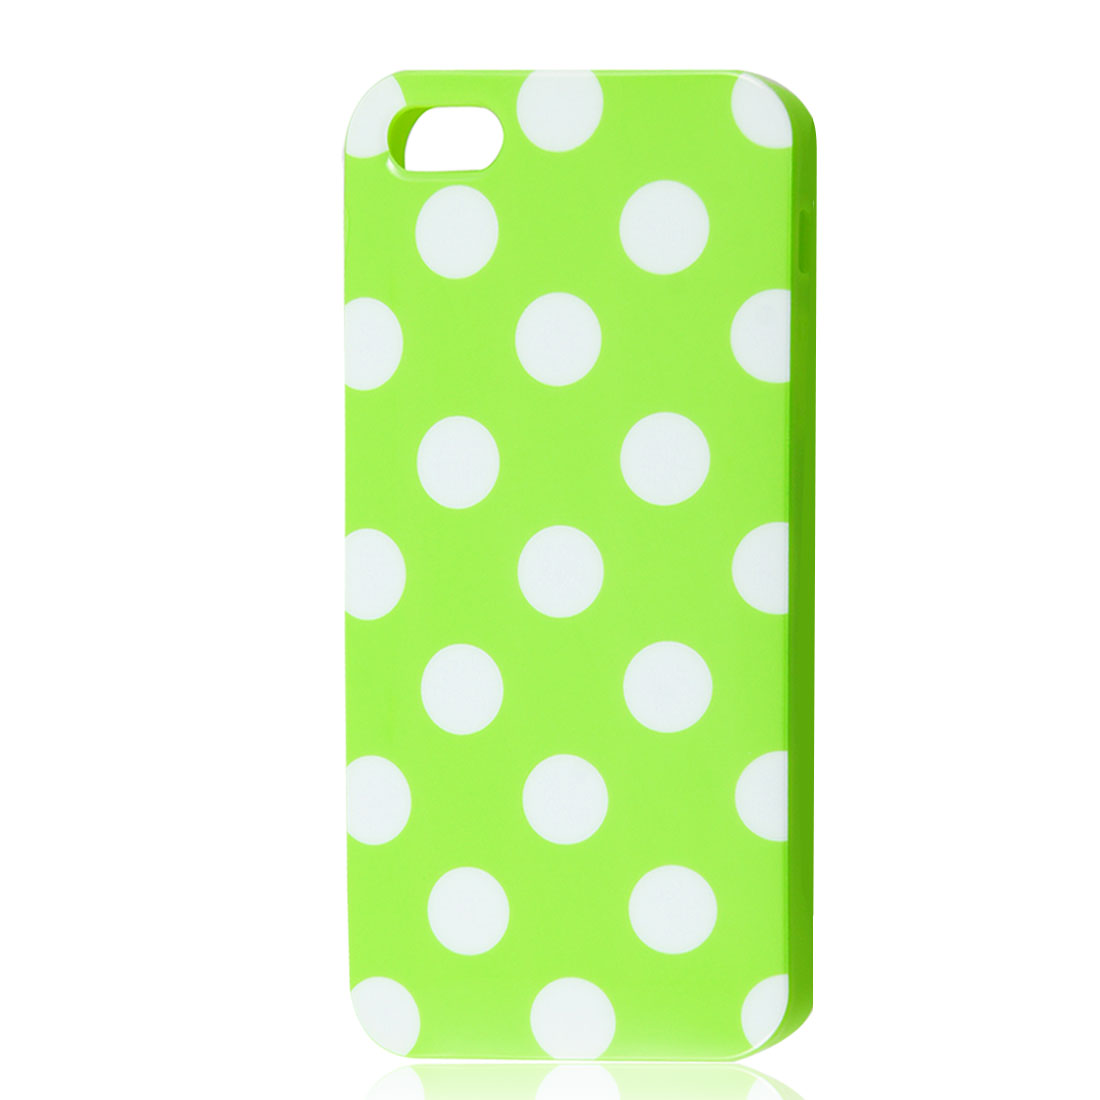 White Polka Dots Green Soft Plastic Case Cover for Apple iPhone 5 5G